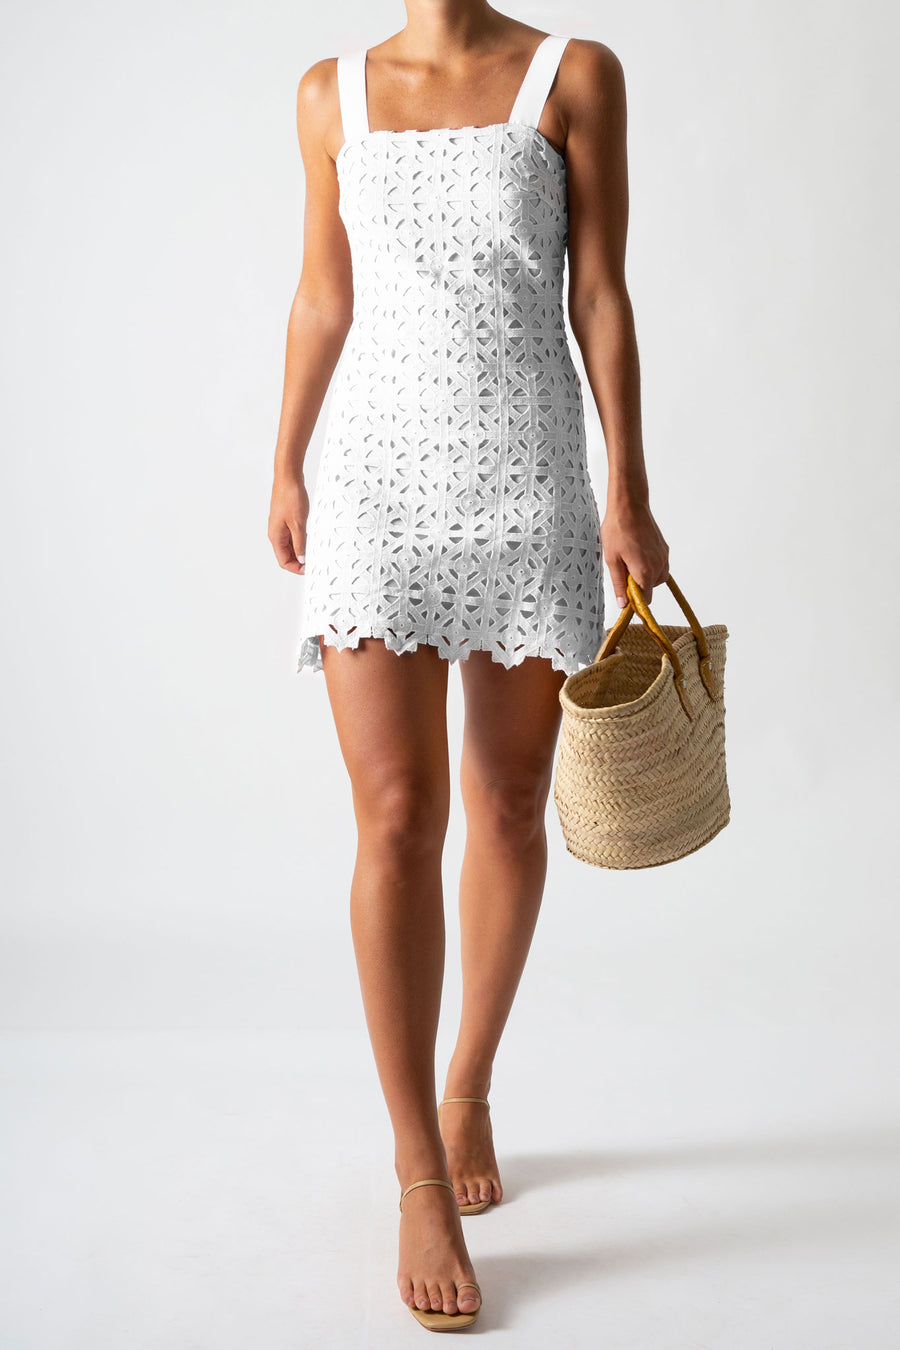 This is a photo of a woman wearing a mini white lace dress with ribbon straps. She holds a basket.